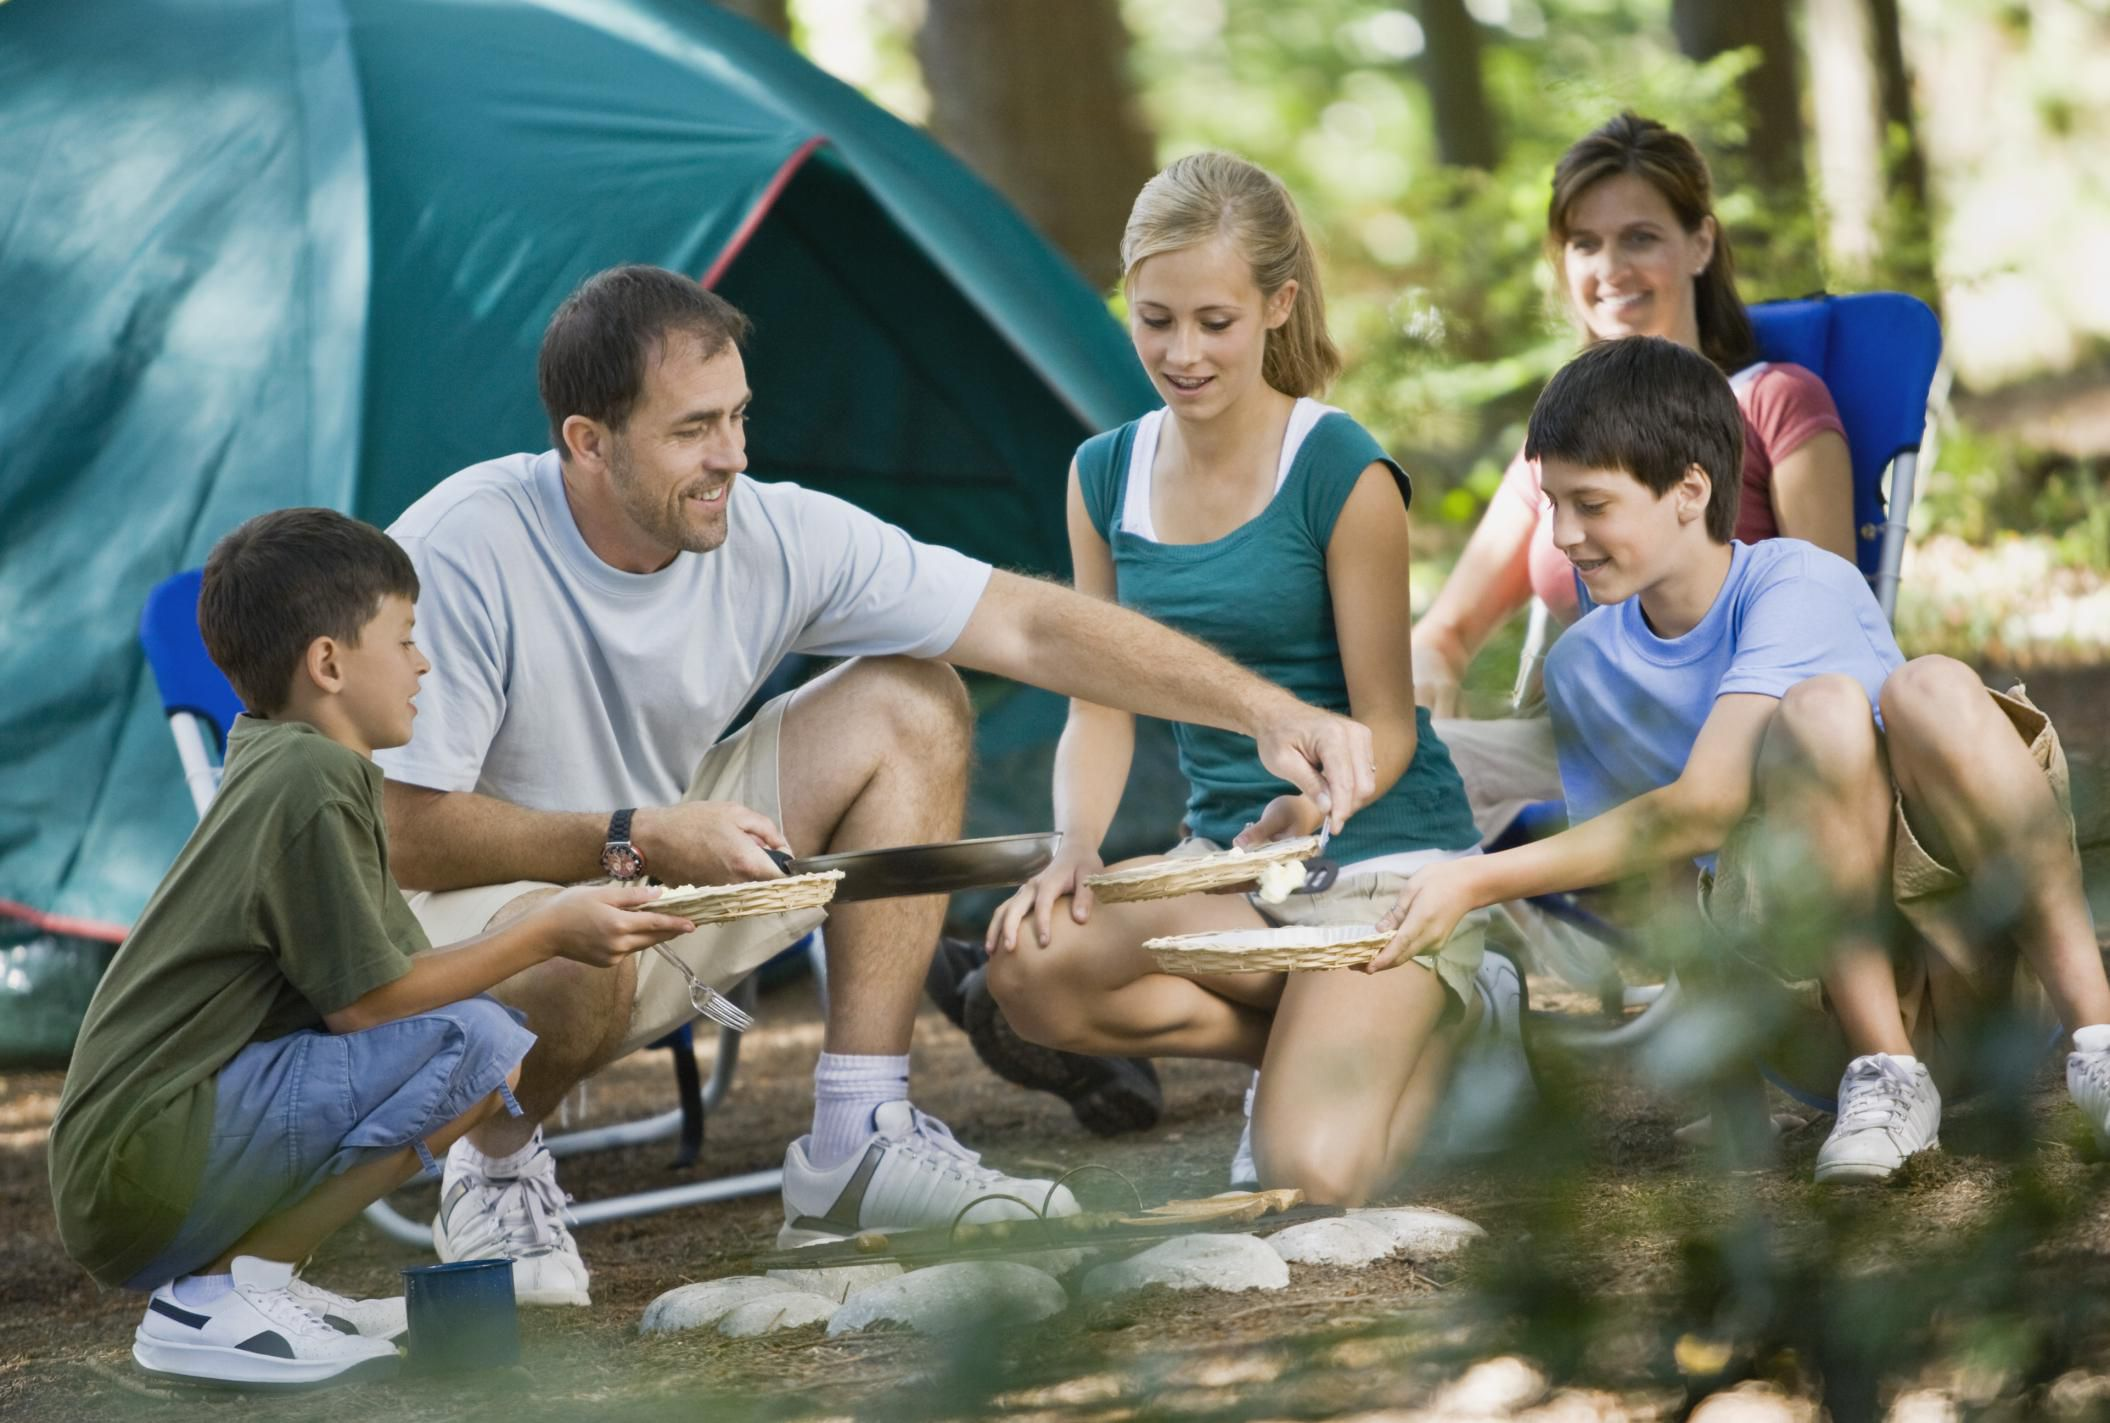 nighttime activities for kids in the great outdoors